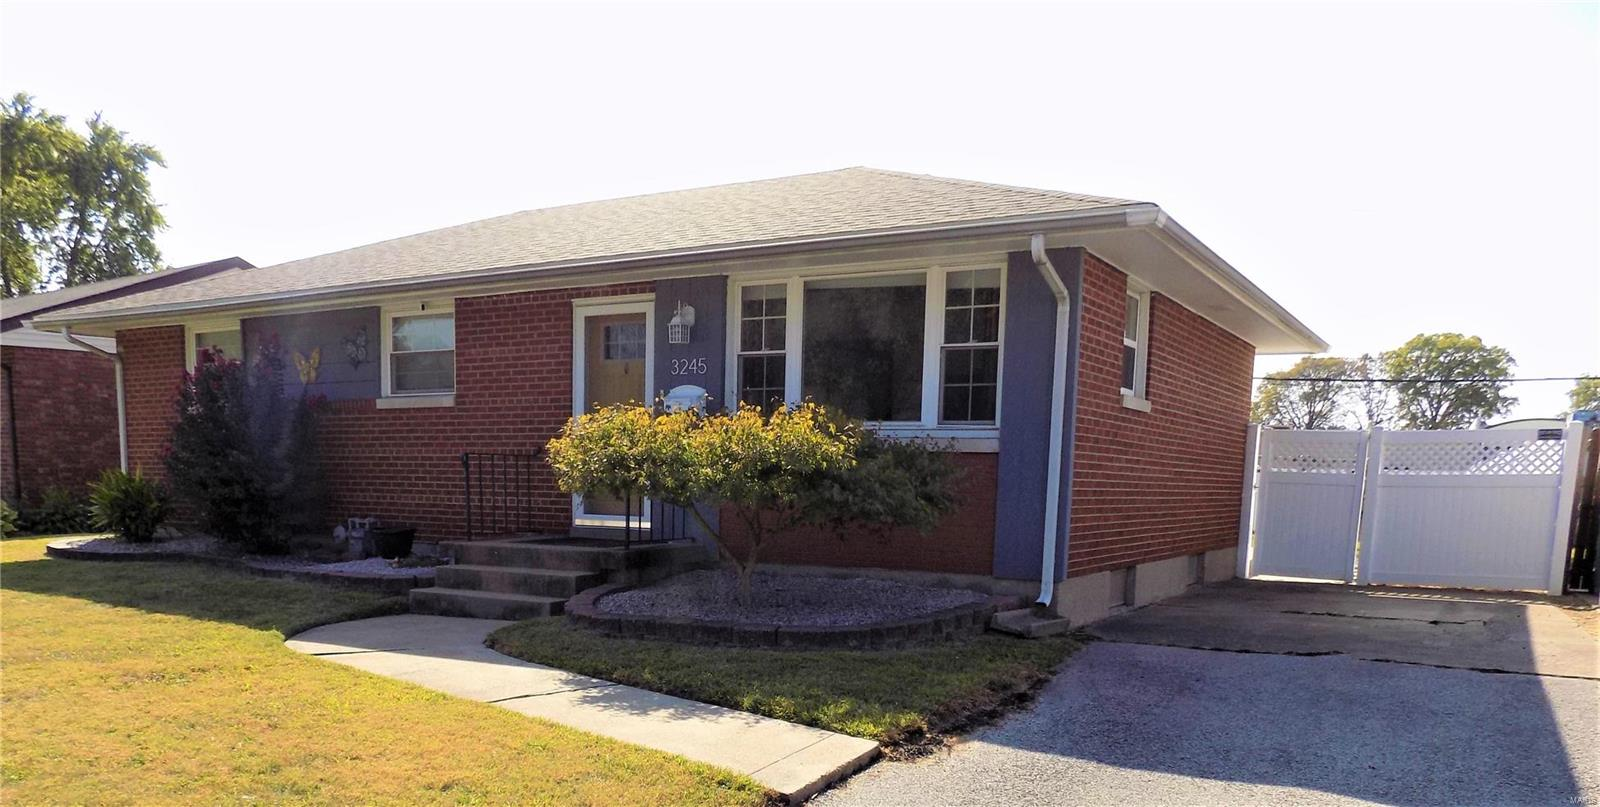 3245 CARLSON Avenue Property Photo - Granite City, IL real estate listing